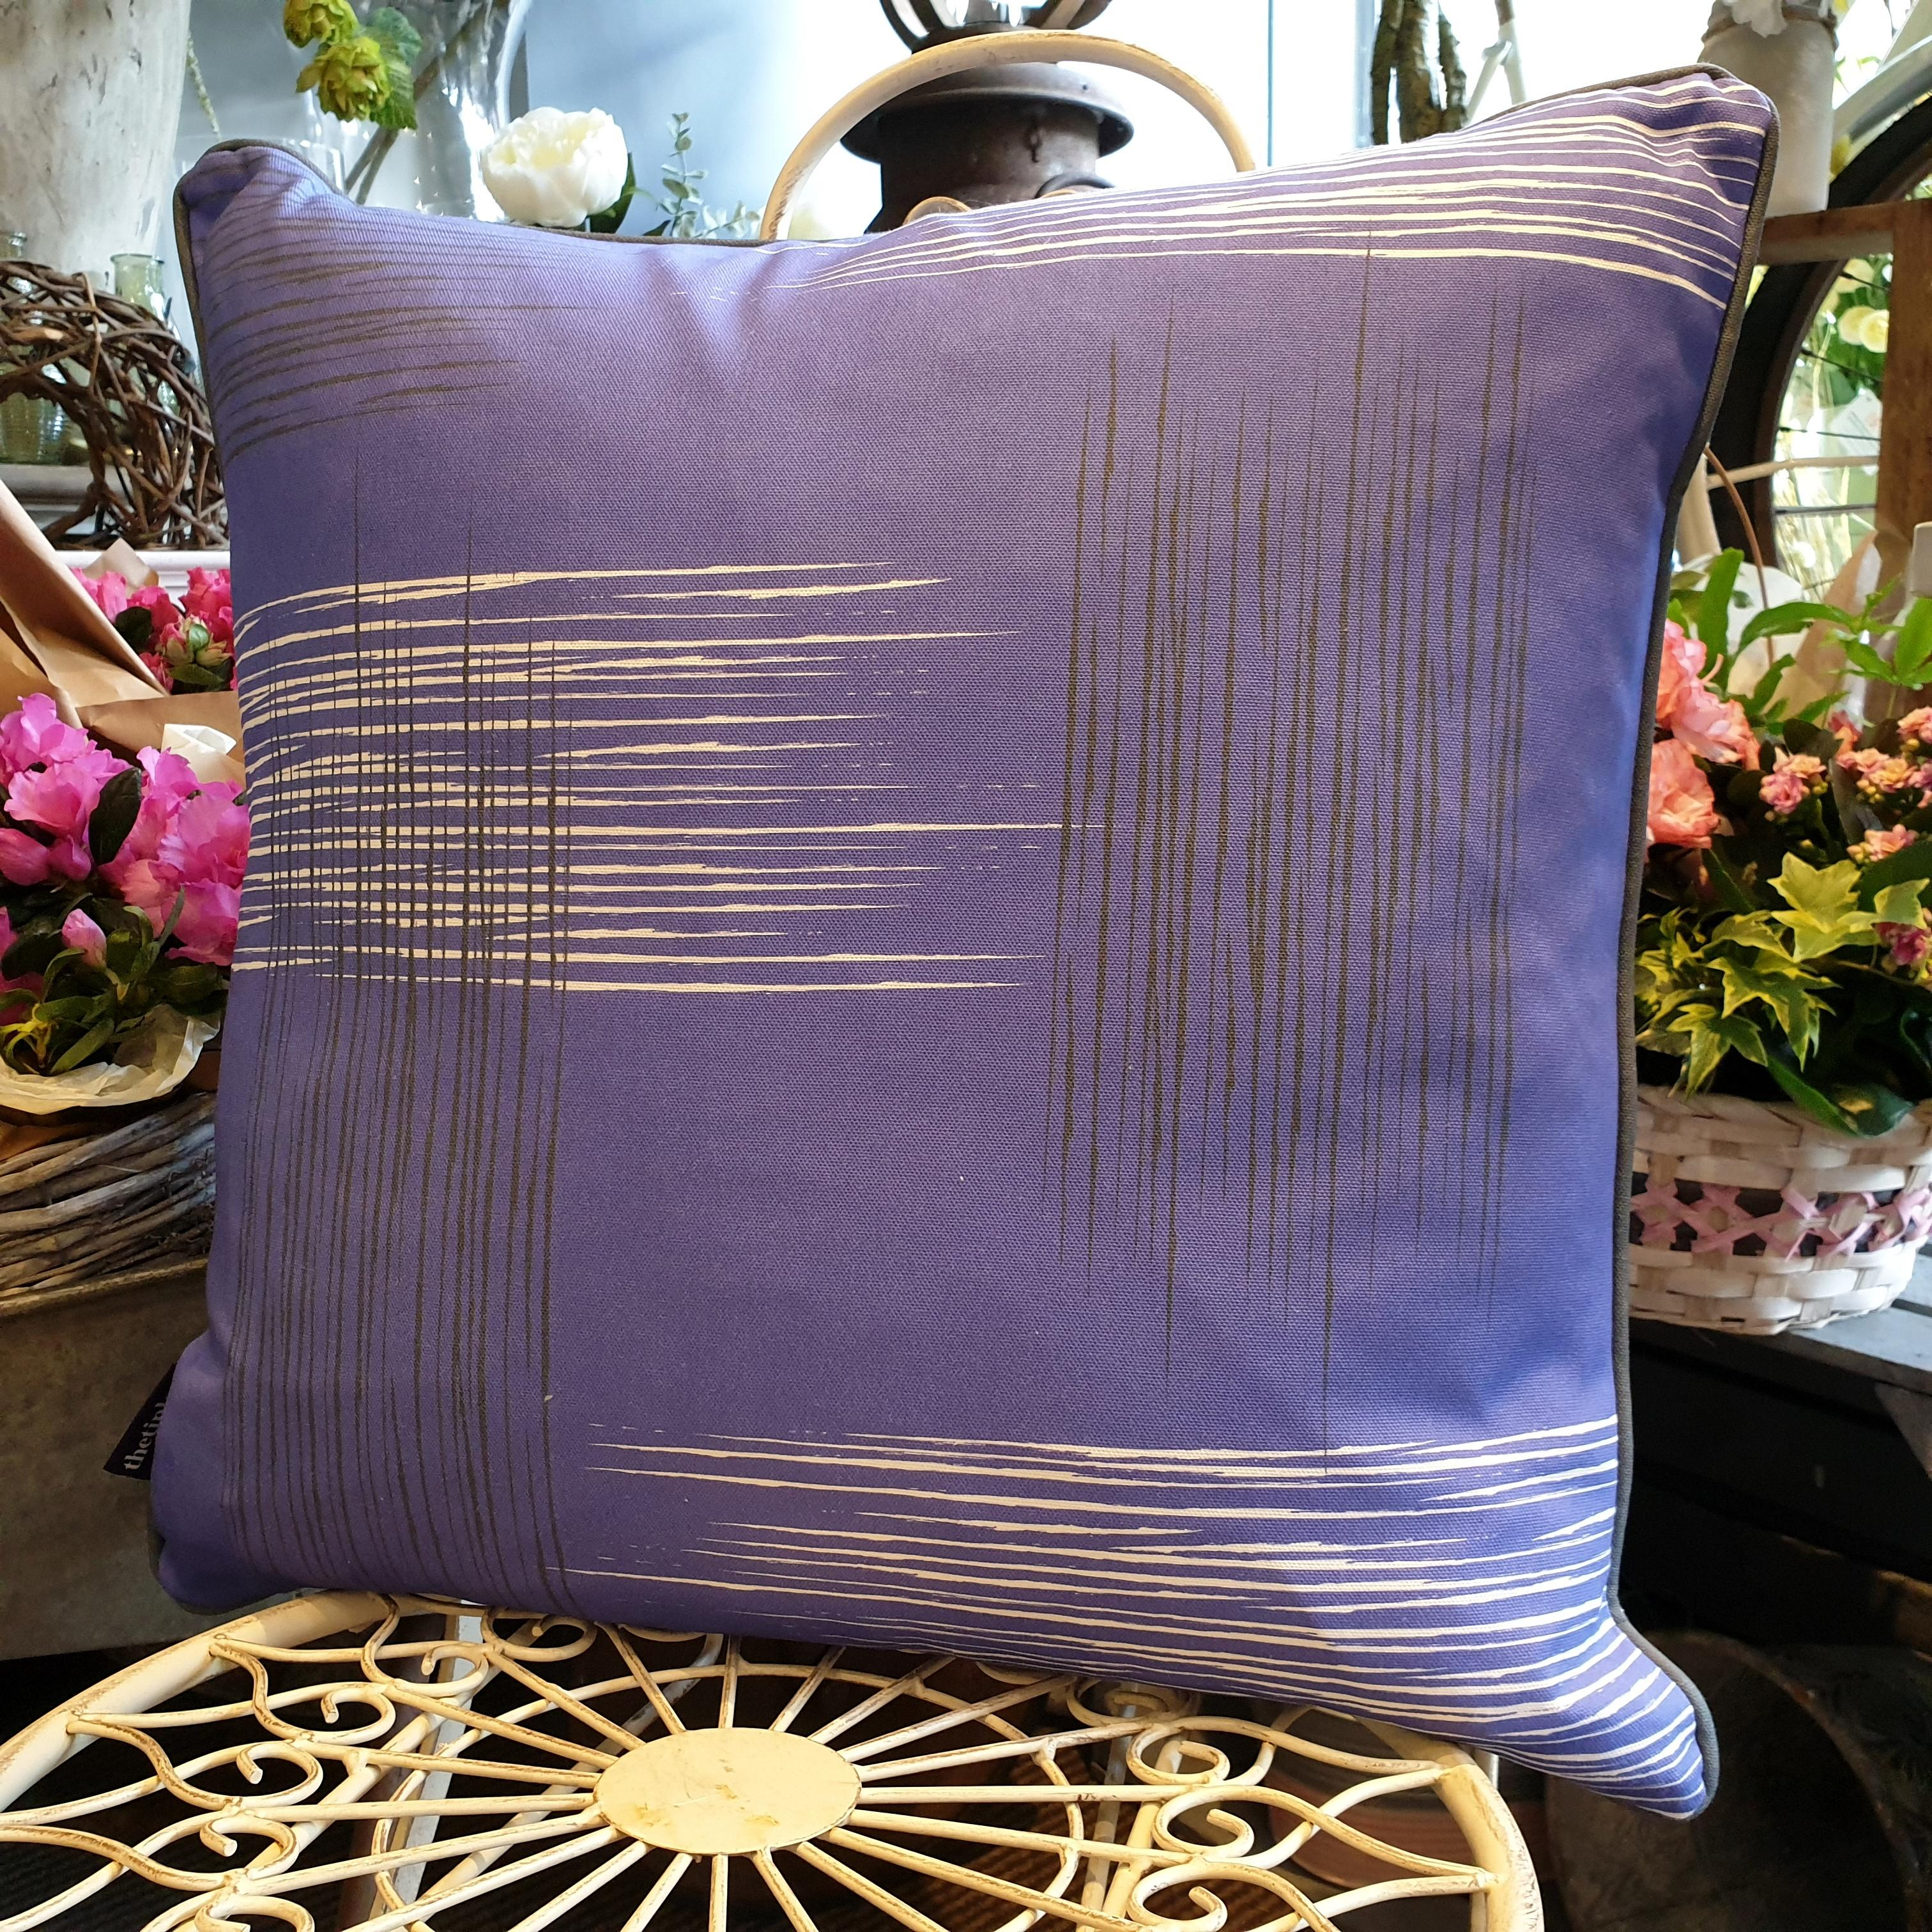 Double-sided violet purple 51cm square retro themed cushion with artistic grey and white shards and grey handcrafted piping designed by thetinkan. Available with an optional luxury cushion inner pad. VIEW PRODUCT >>